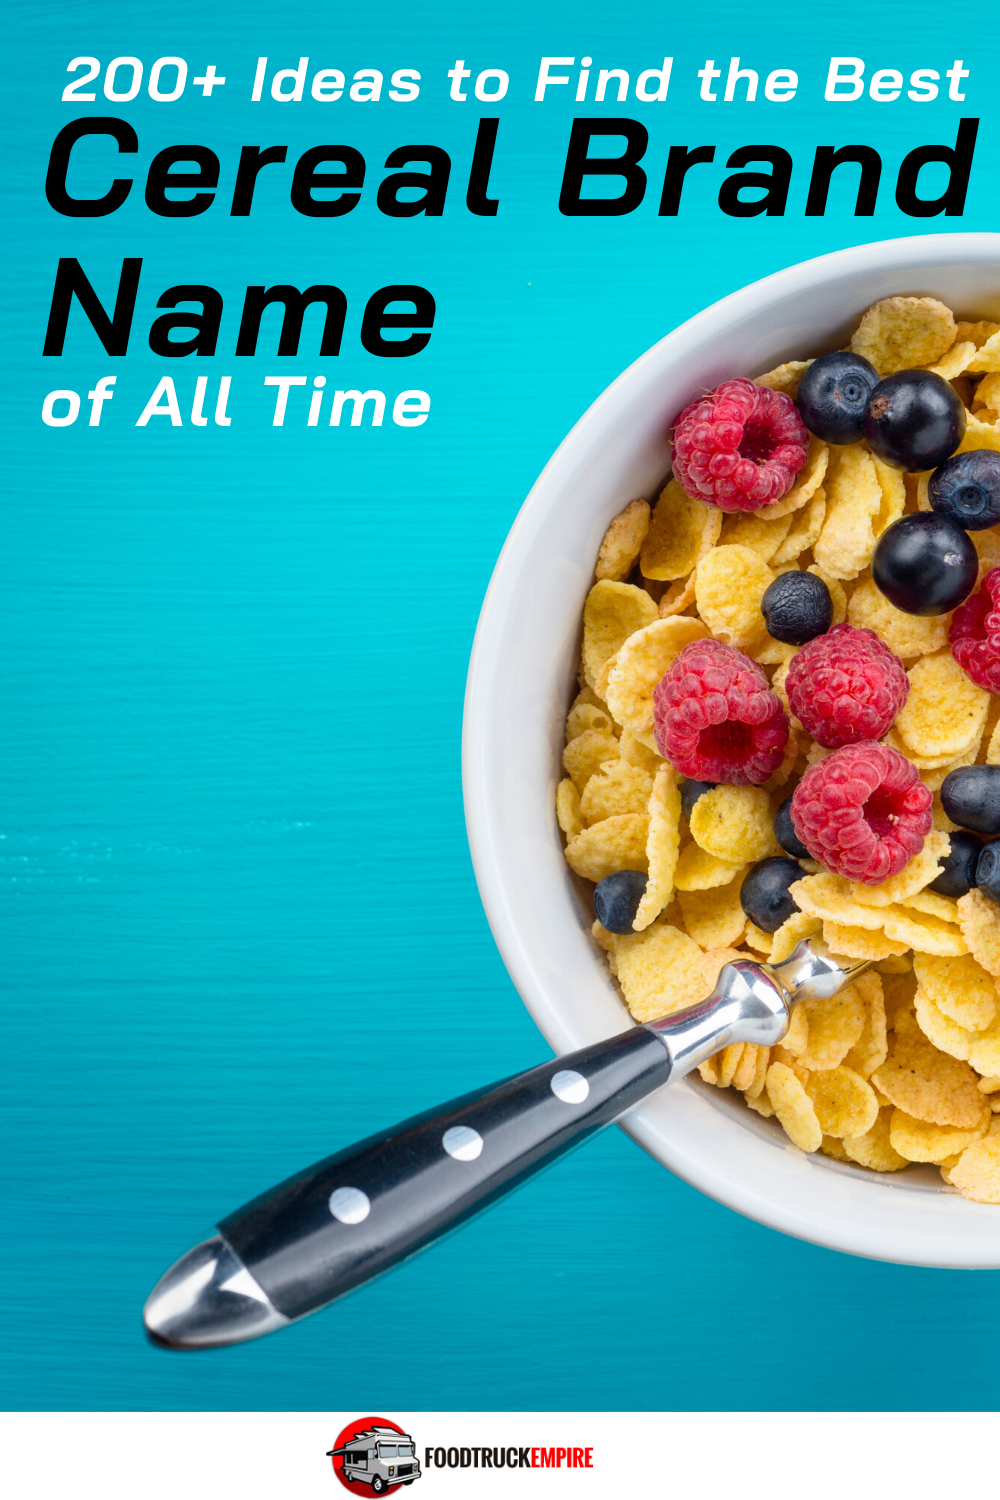 200+ Cereal Brand Name Ideas